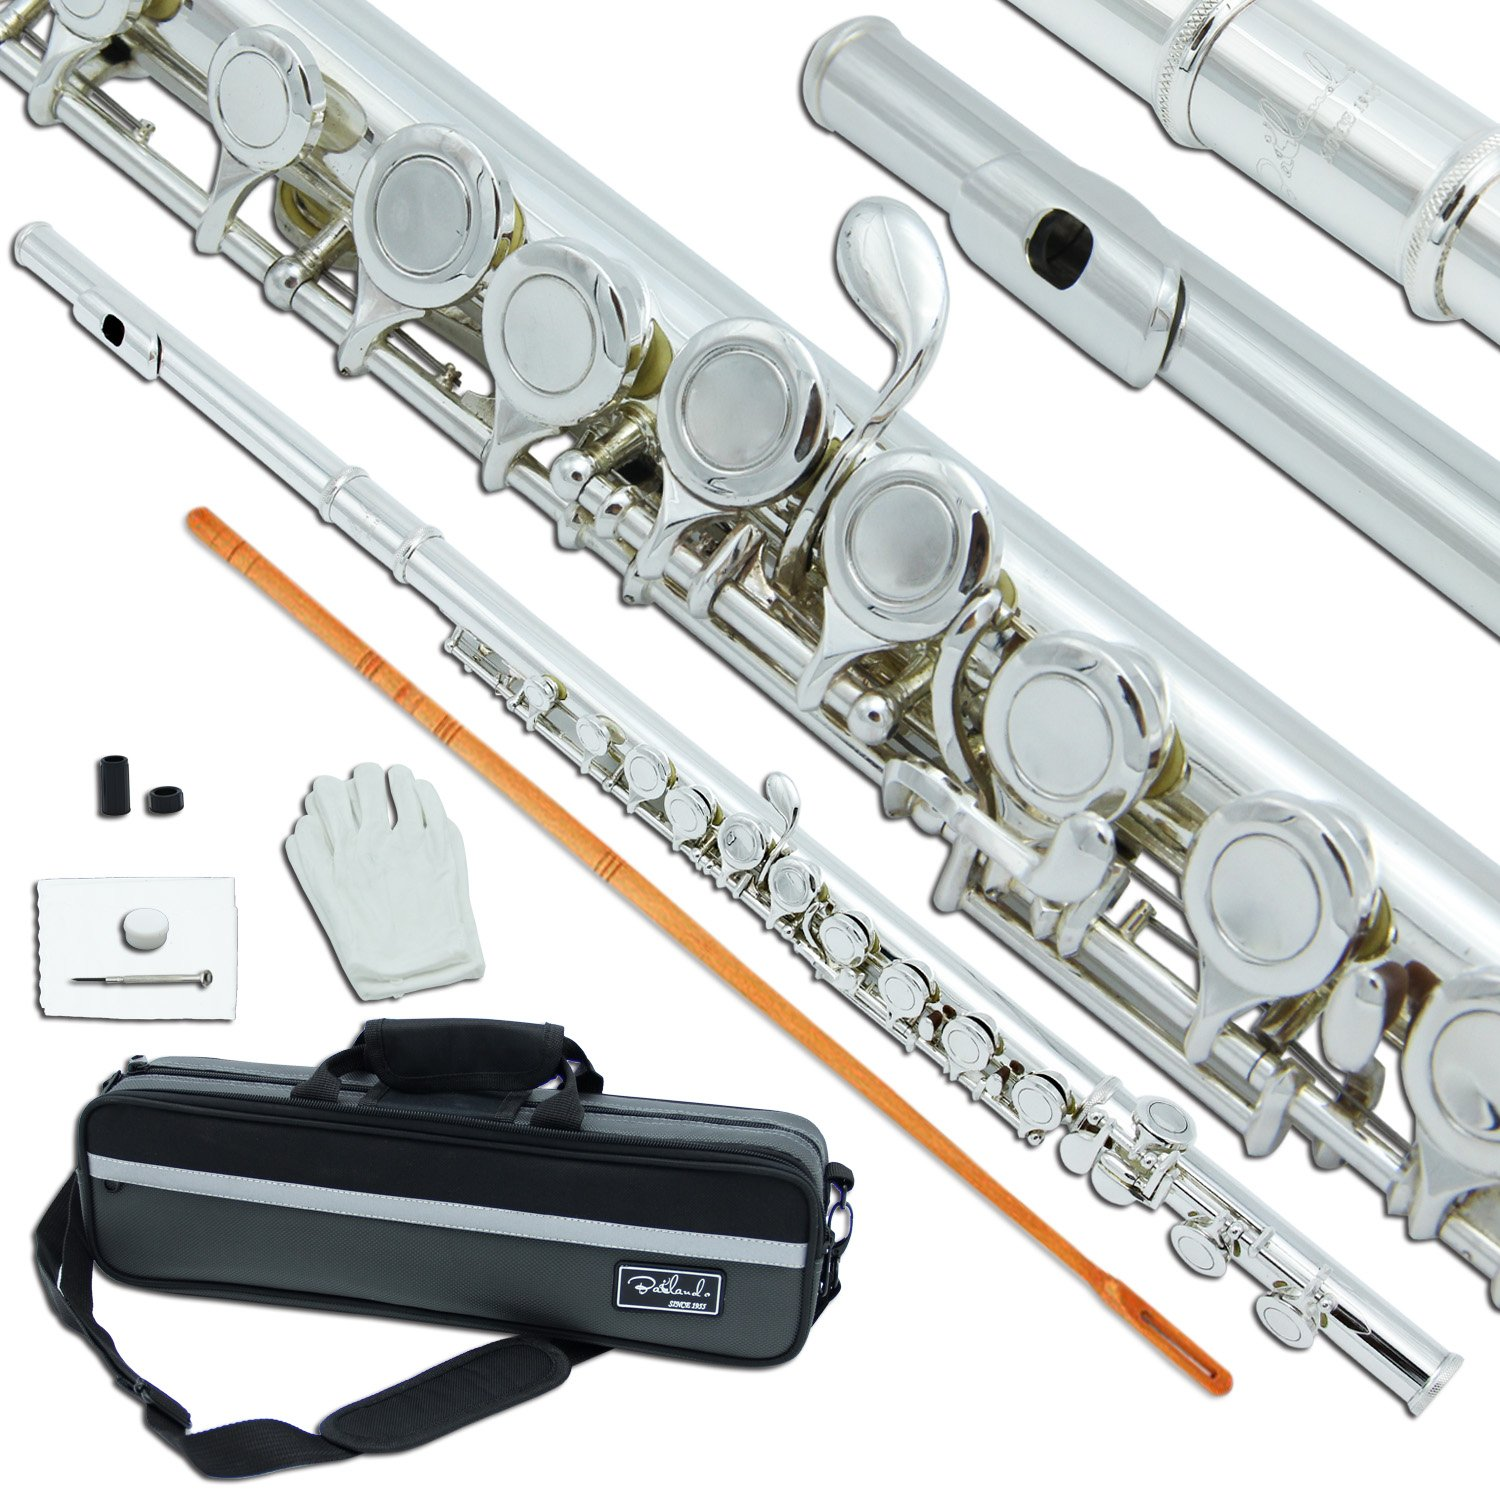 Bailando High Grade Silver Plated Flute, Offset G, C-Foot, Split E Mechanism, Closed Hole and Excellent Tremolo